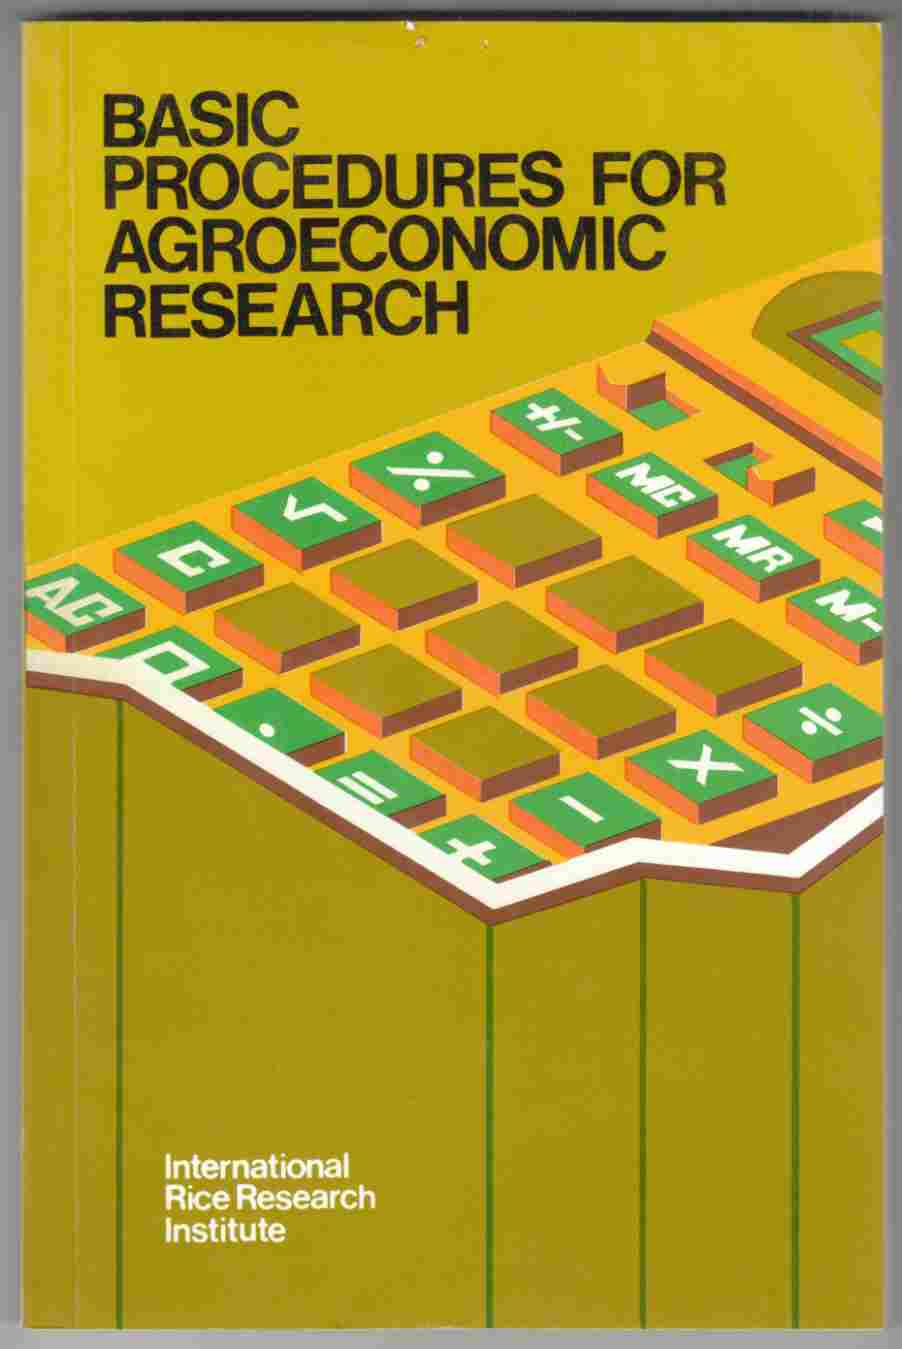 Image for Basic Procedures for Agroeconomic Research